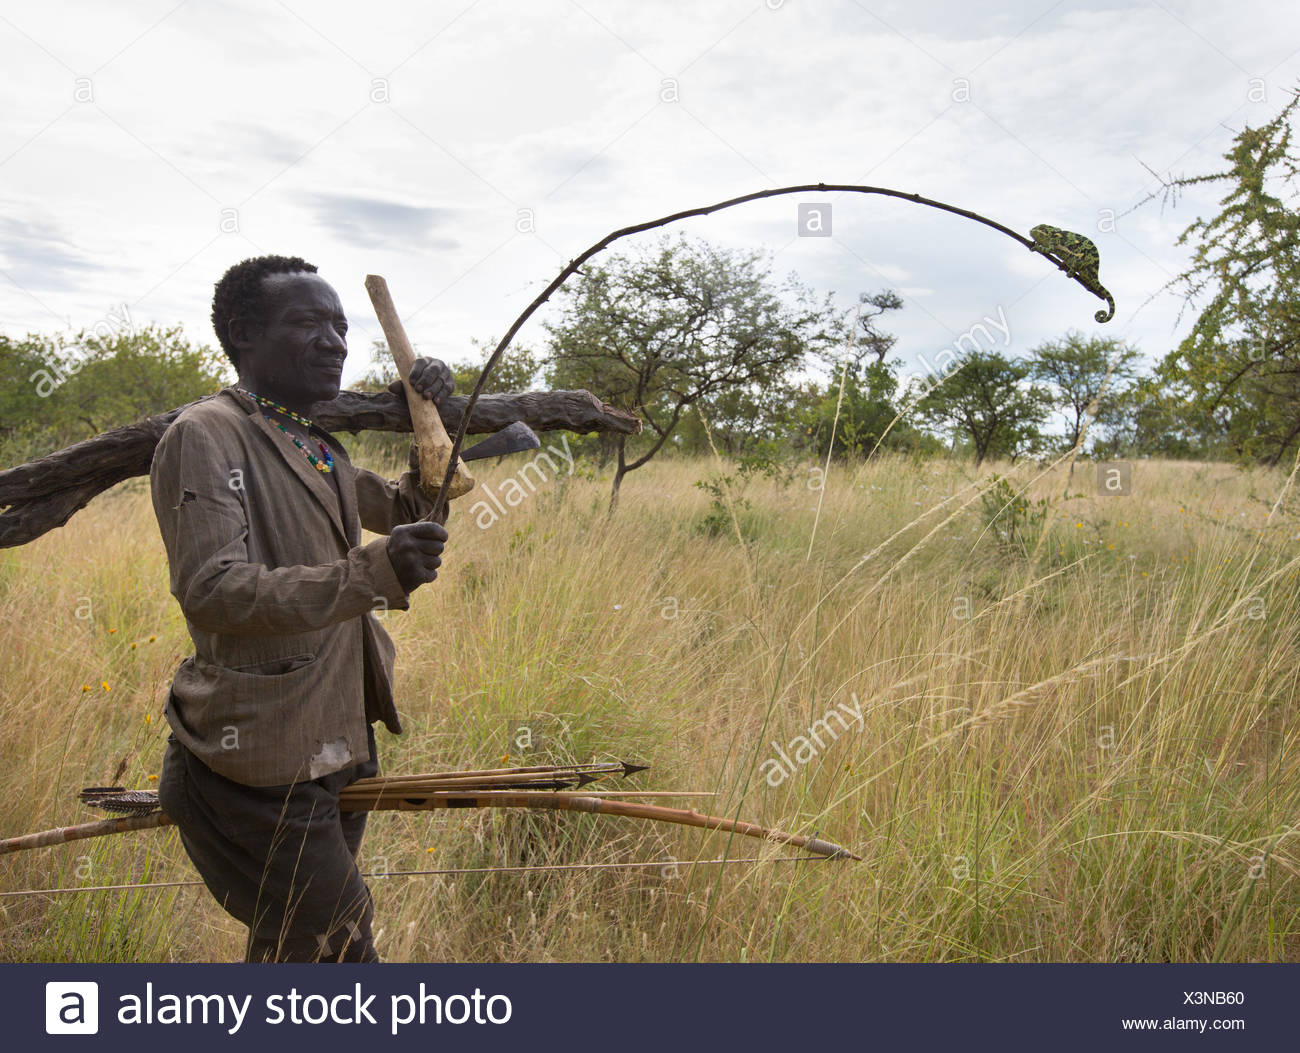 A Hadza man holds out a stick with a chameleon clinging to it. - Stock Image